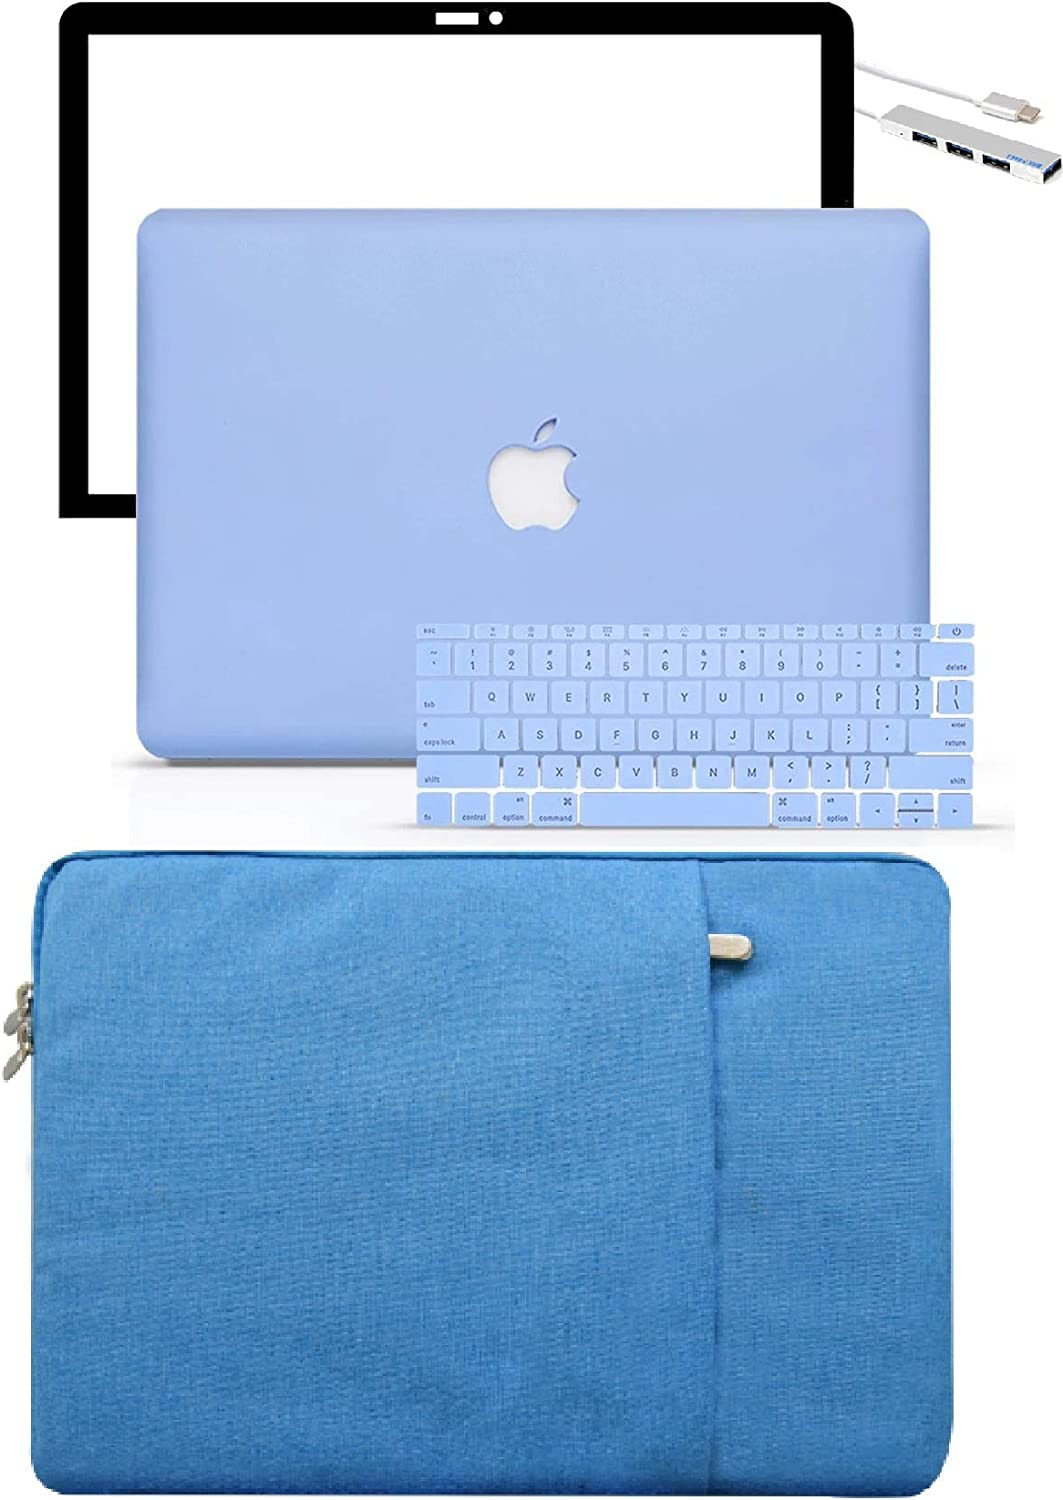 LuvCase 5 in 1 Laptop Case for MacBook Air 13 Inch (Touch ID)(2020) A2179 Retina Display Hard Shell Cover, Slim Sleeve, Pouch, Keyboard Cover & Screen Protector (Serenity Blue)